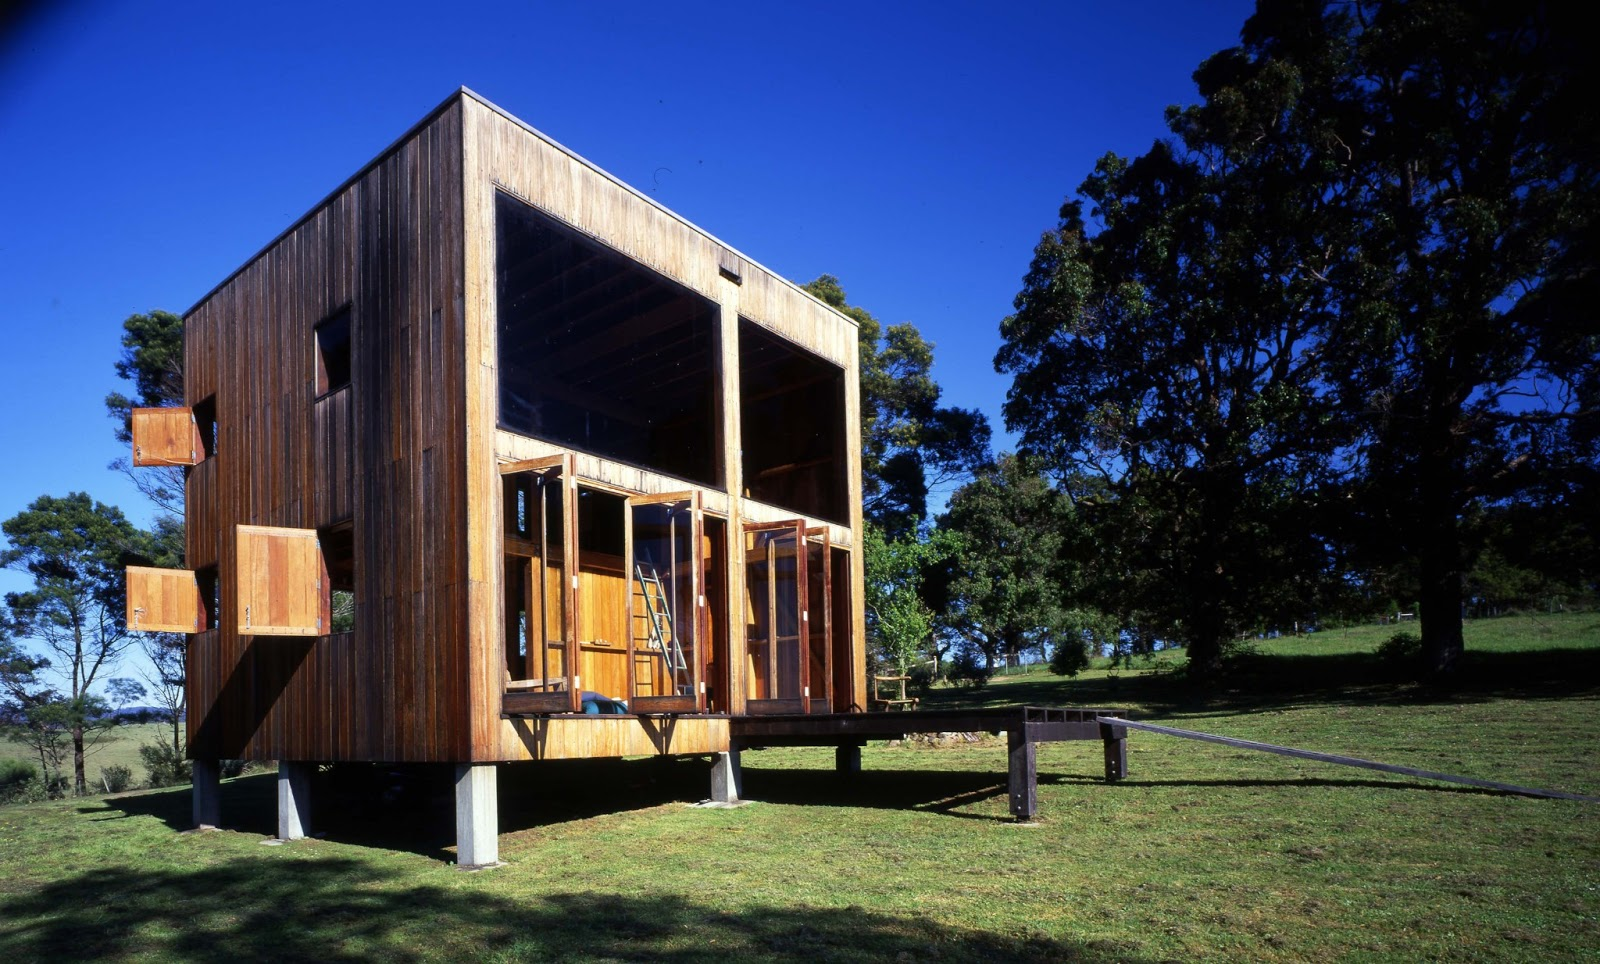 gallery the box house an off grid cabin in australia nicholas murcutt small house bliss. Black Bedroom Furniture Sets. Home Design Ideas